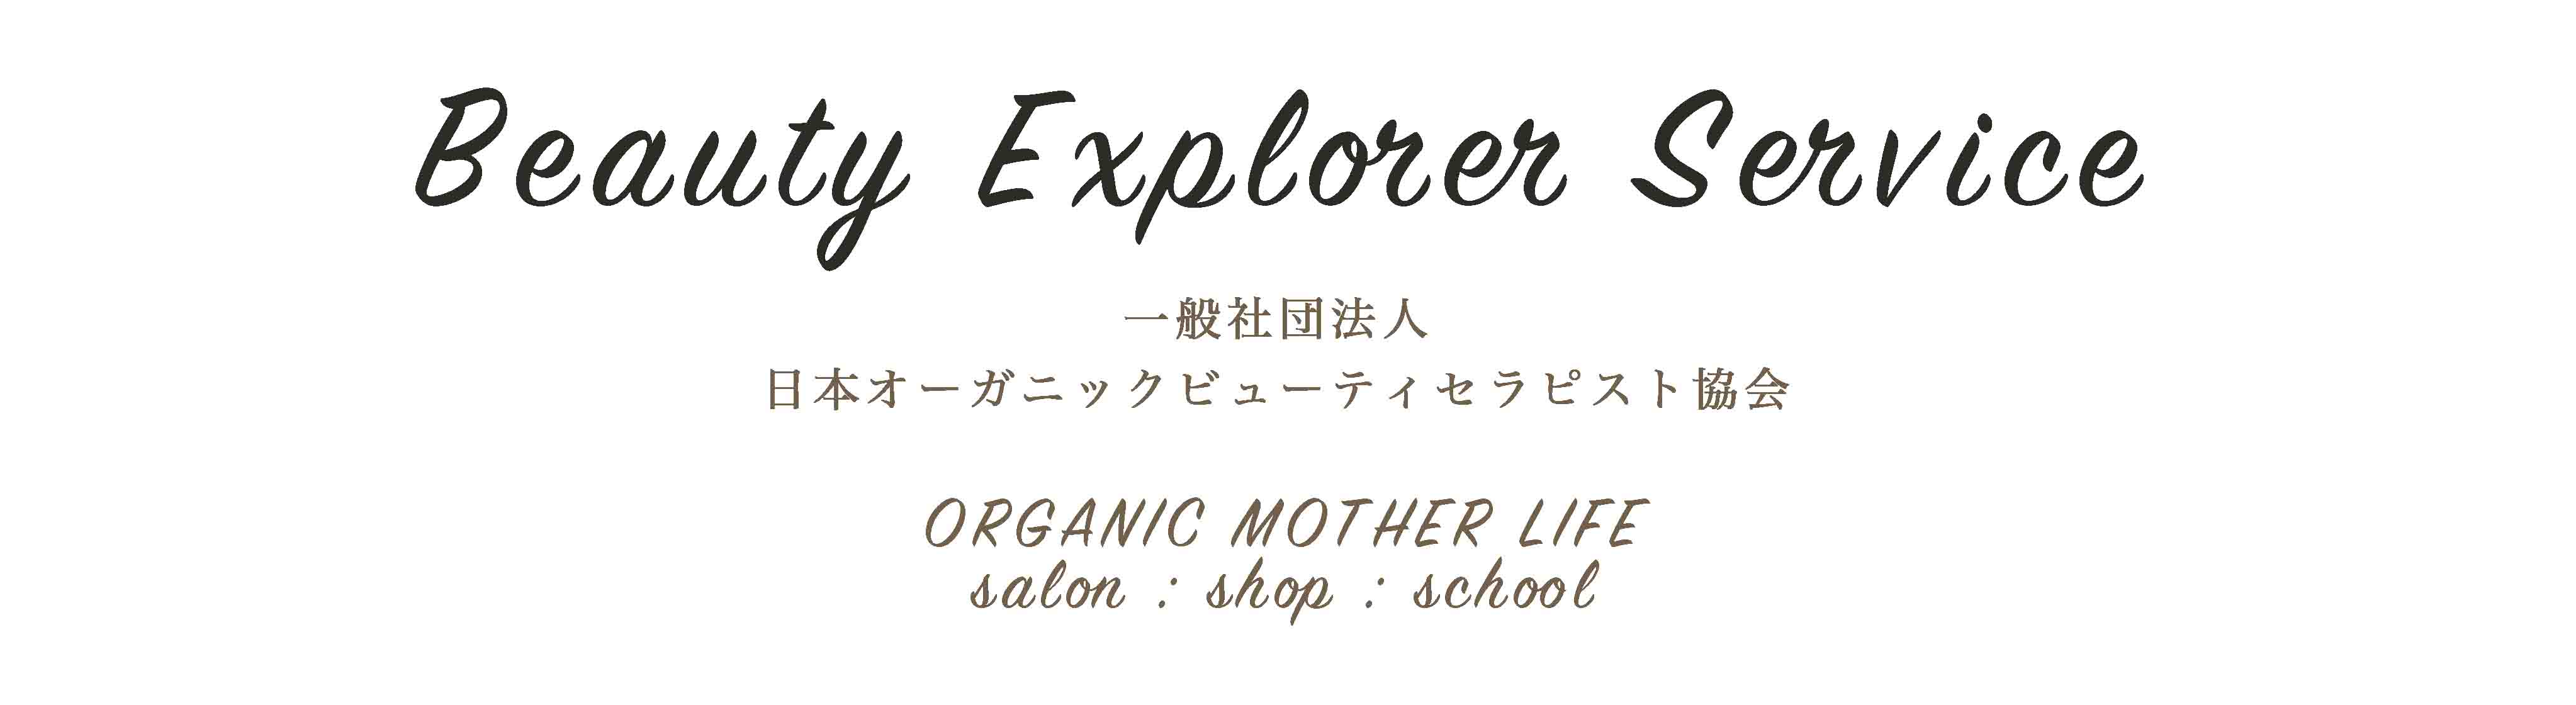 Beauty Explorer Service